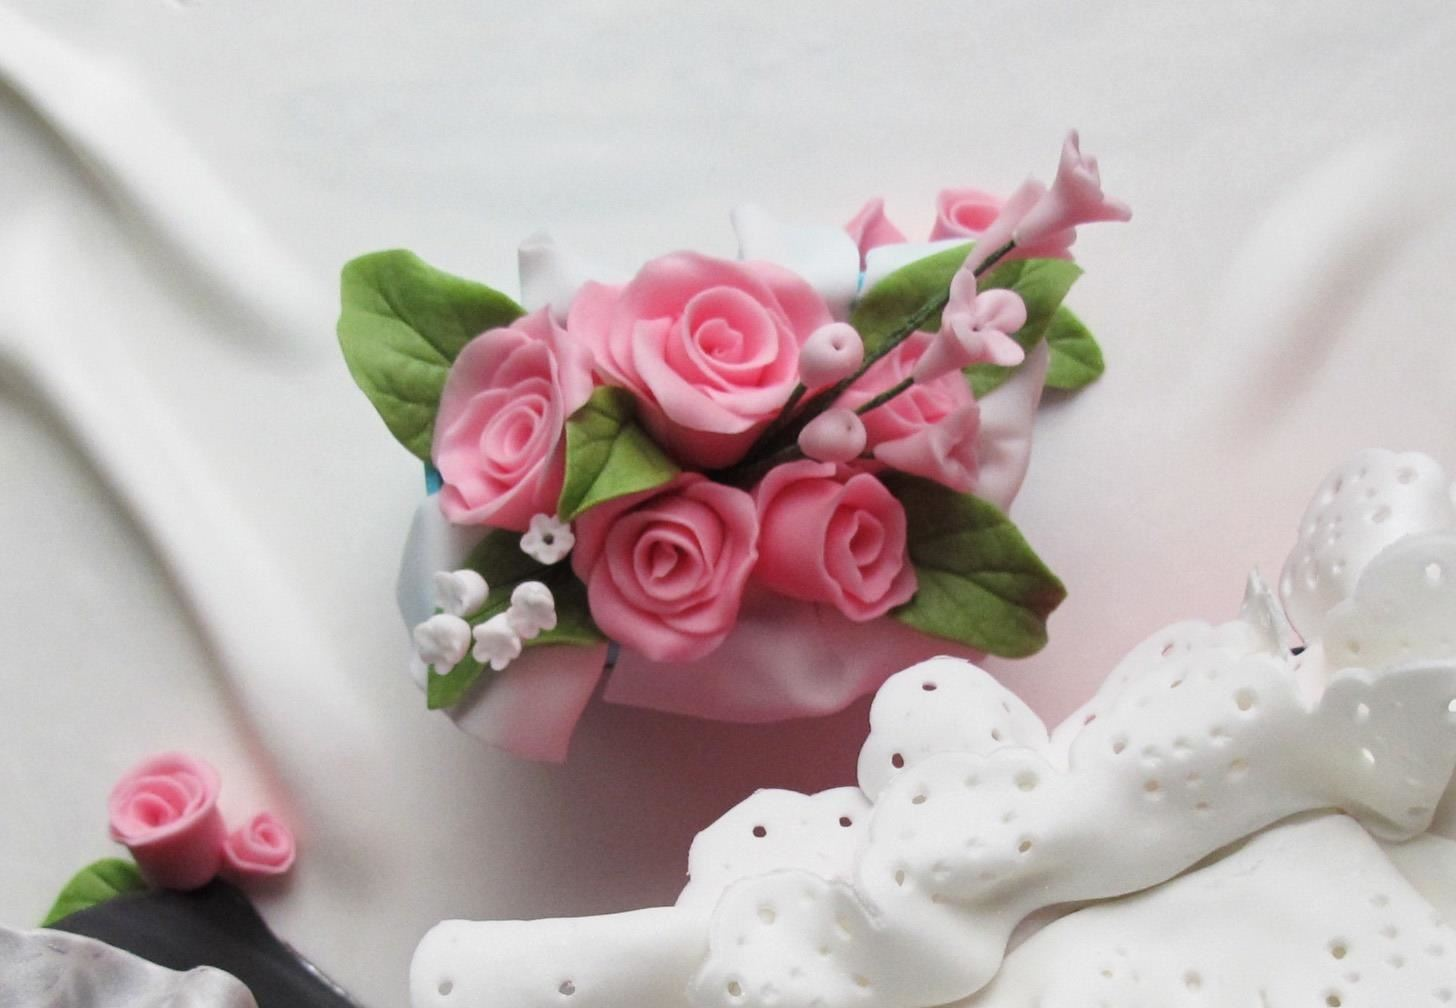 How to make quick and easy fondant roses and filler flowers no forum thread how to make quick and easy fondant roses and filler flowers no cutters mightylinksfo